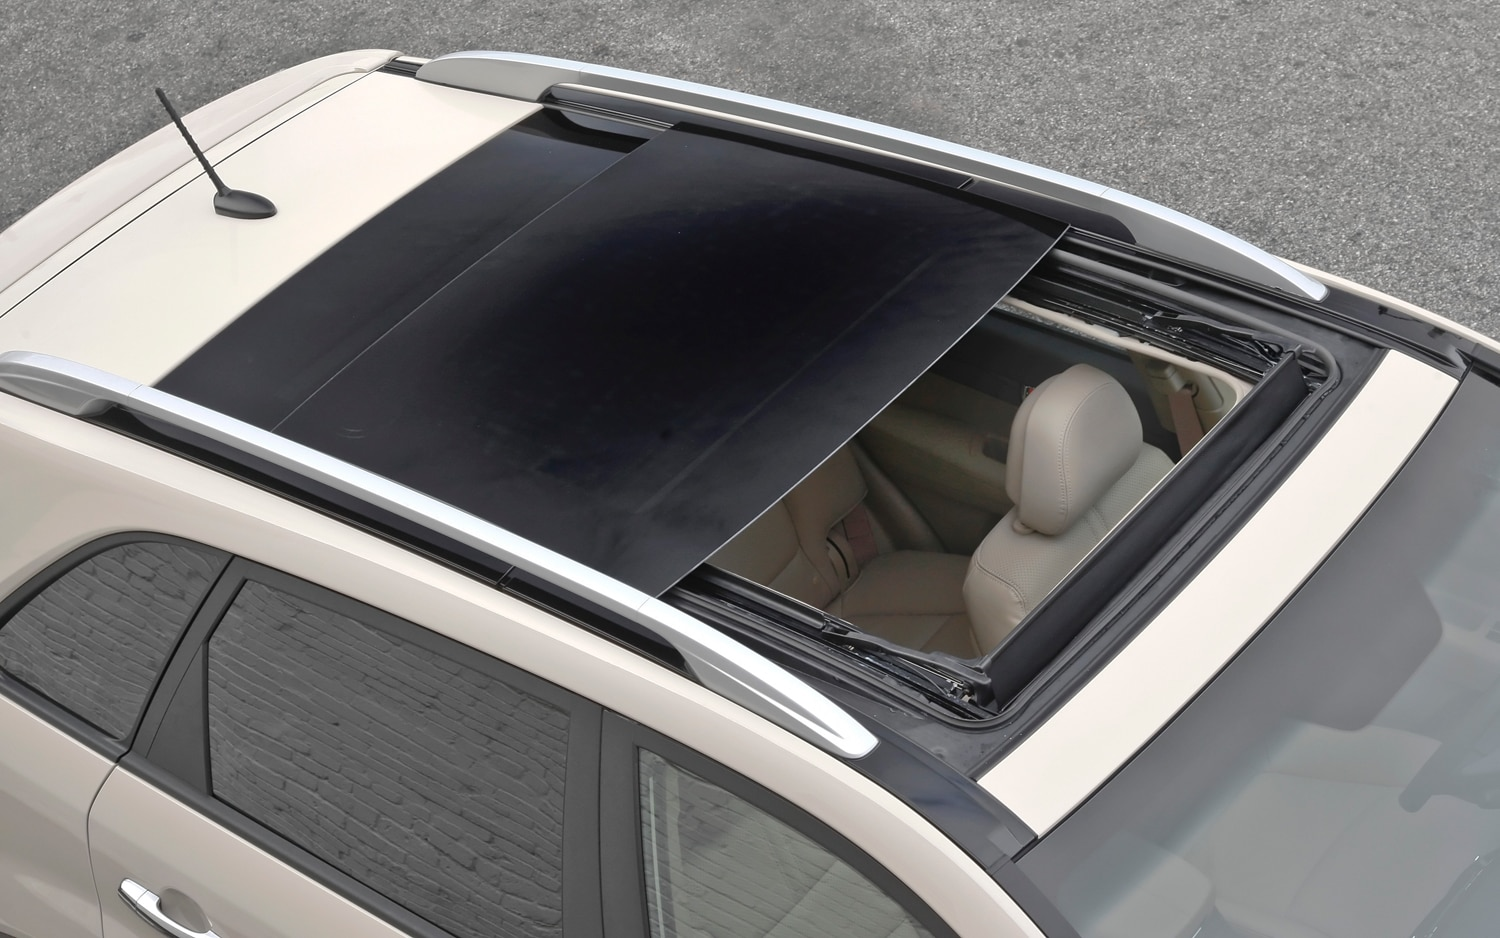 2012 Kia Sorento Sunroof